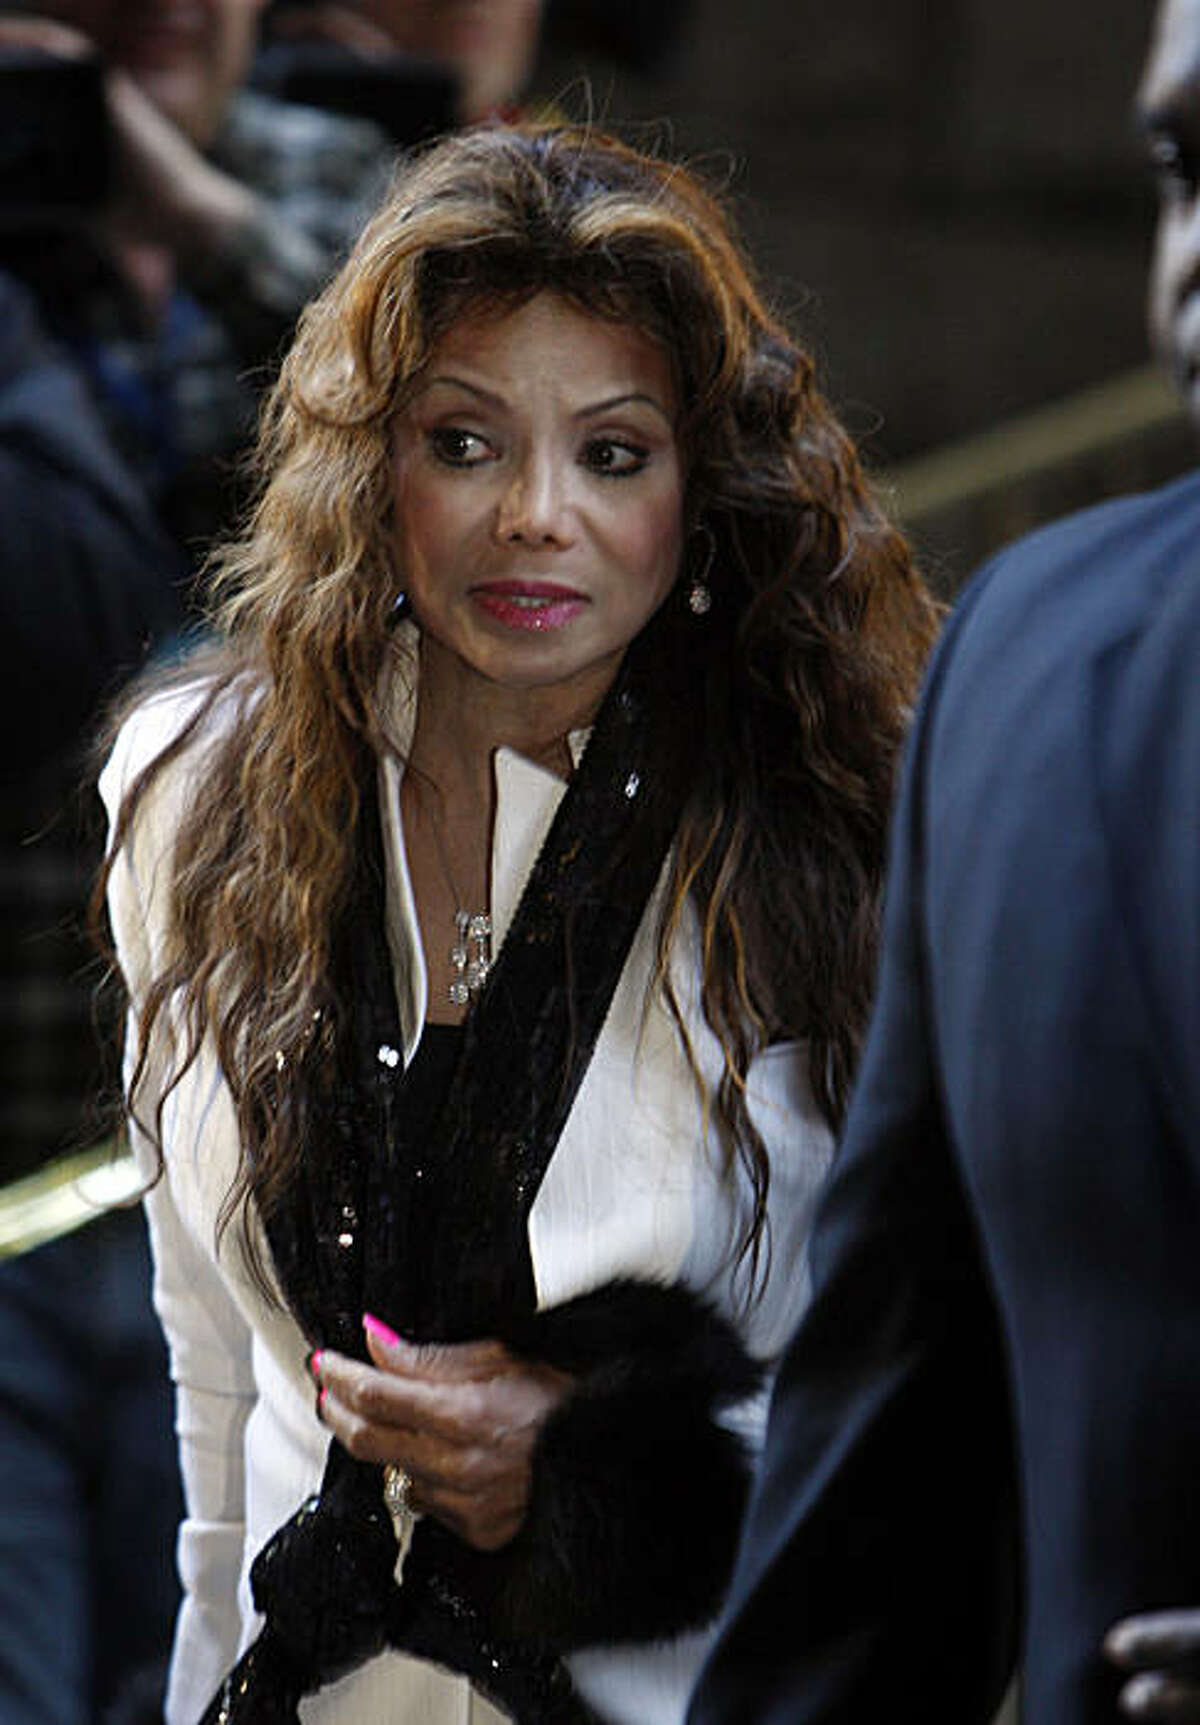 Michael Jackson's sister La Toya Jackson arrives for the preliminary hearing for Dr. Conrad Murray at the Criminal Courts building in downtown Los Angeles, California, January 4, 2011. Murray stands accused of involuntary manslaughter in connection with Jackson's June 25, 2009 death. (Genaro Molina/Los Angeles Times/MCT)